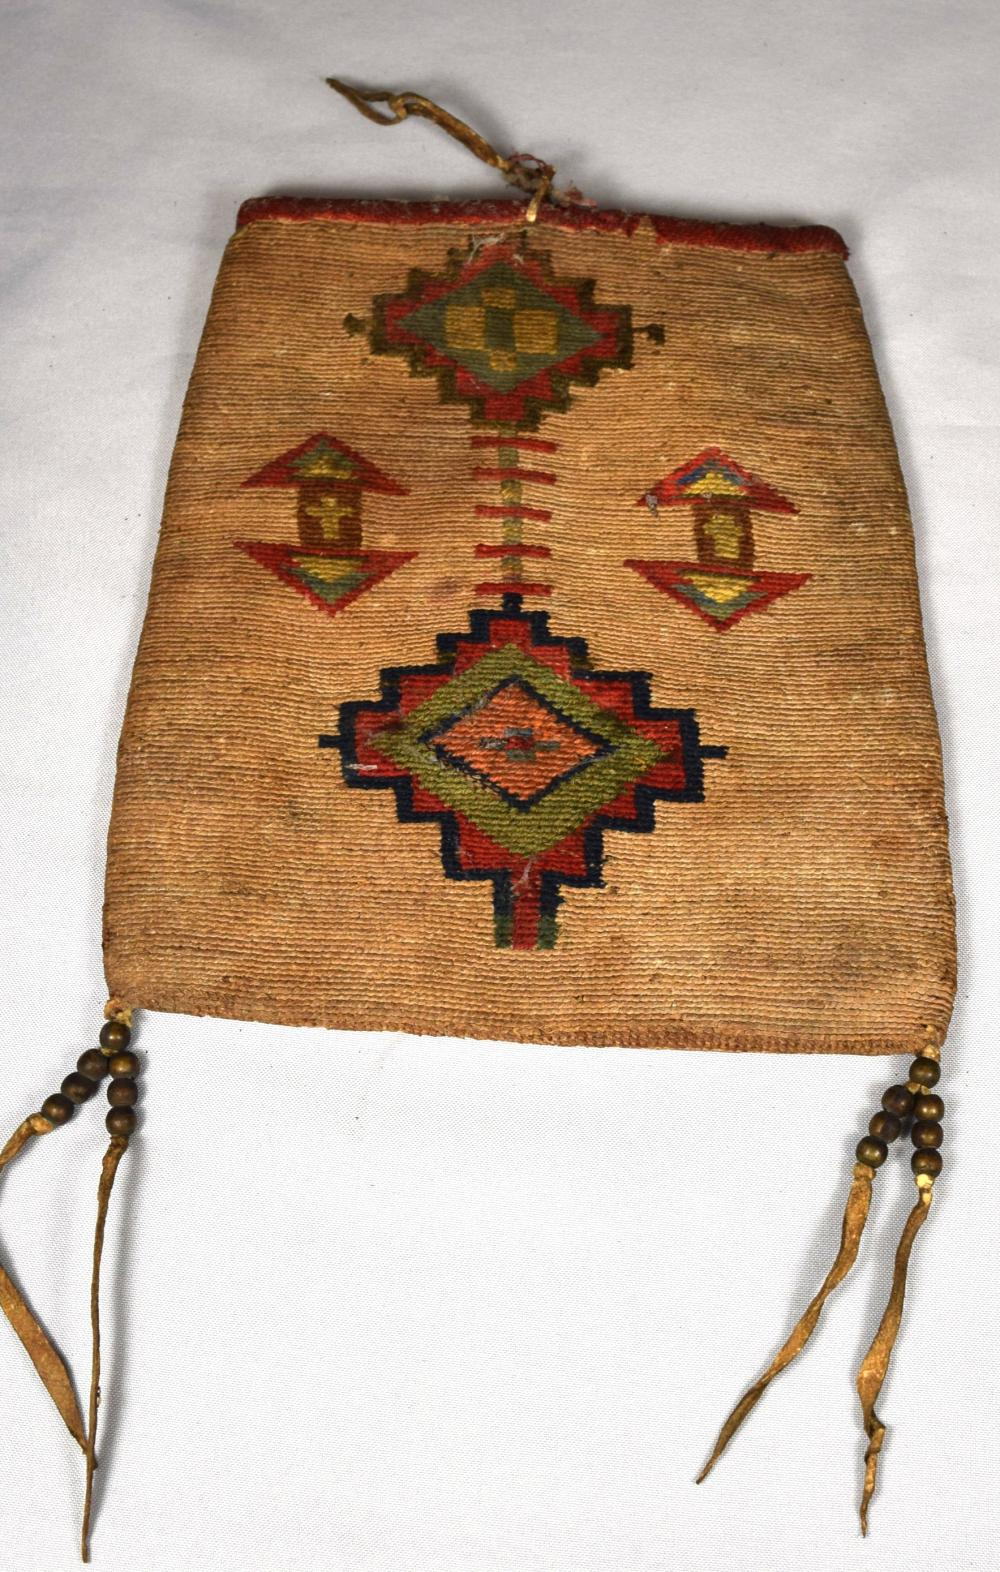 NATIVE AMERICAN WOVEN POUCH: